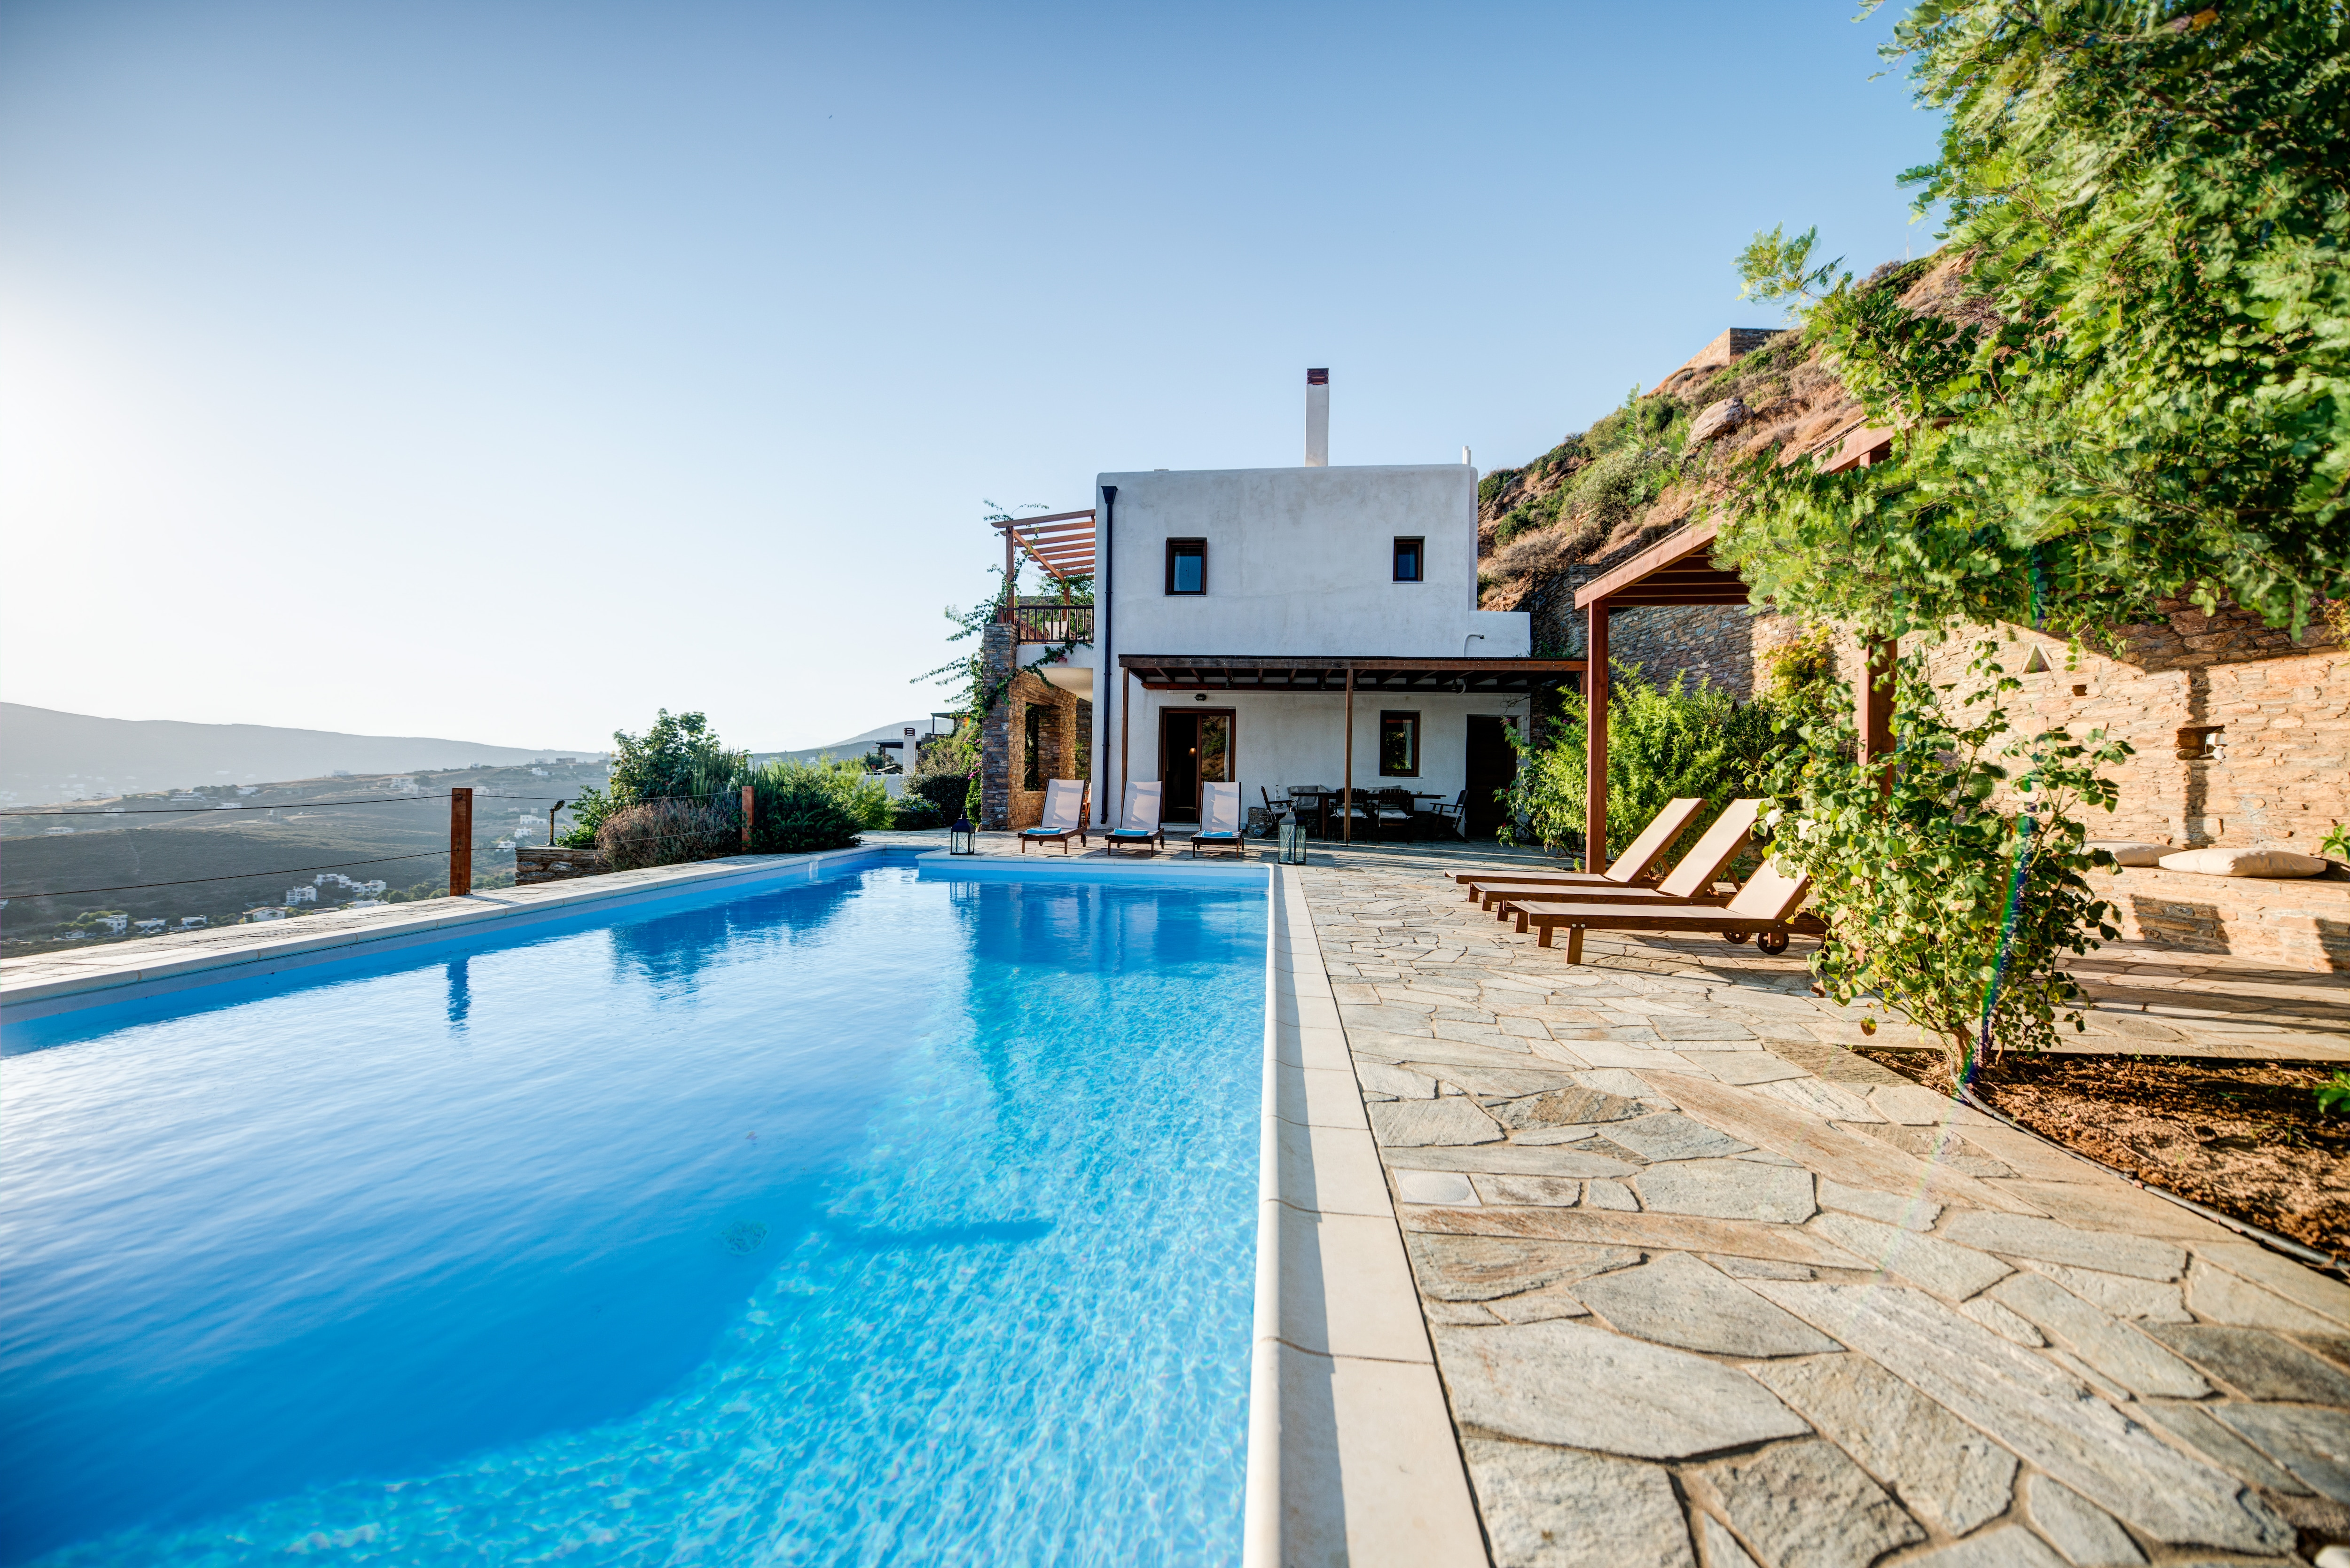 Property Image 1 - Cliffside villa with amazing views